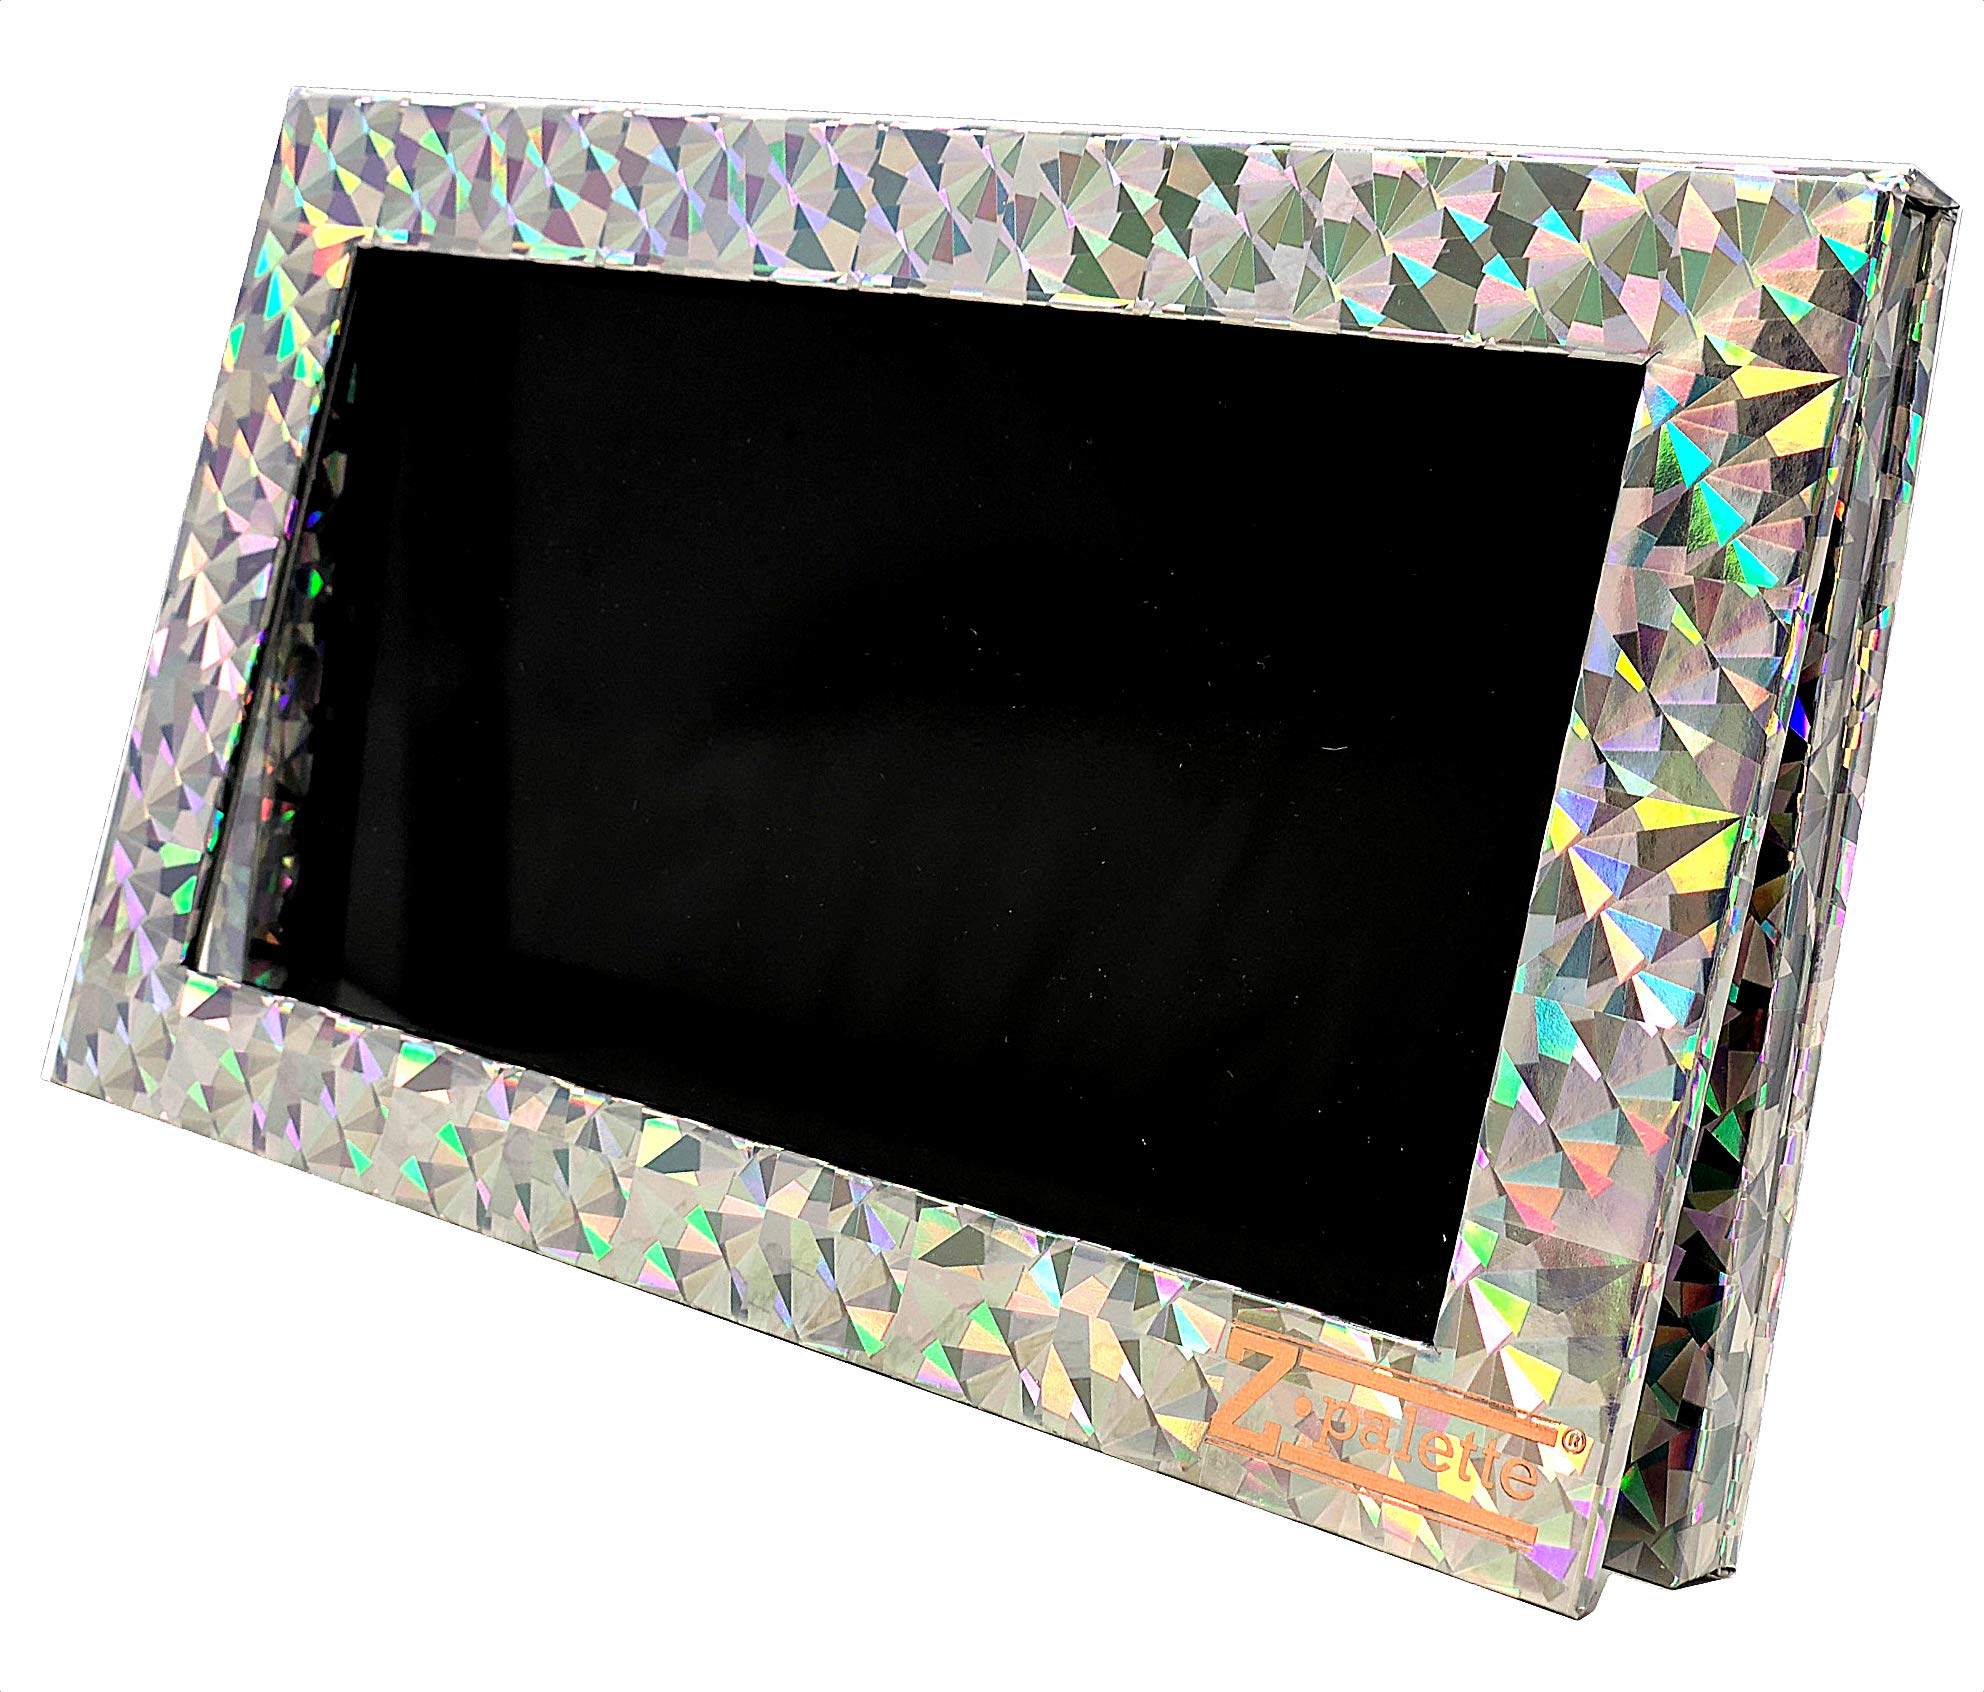 Z Palette Hologram, Large - Special Edition for MMP Living by Z Palette